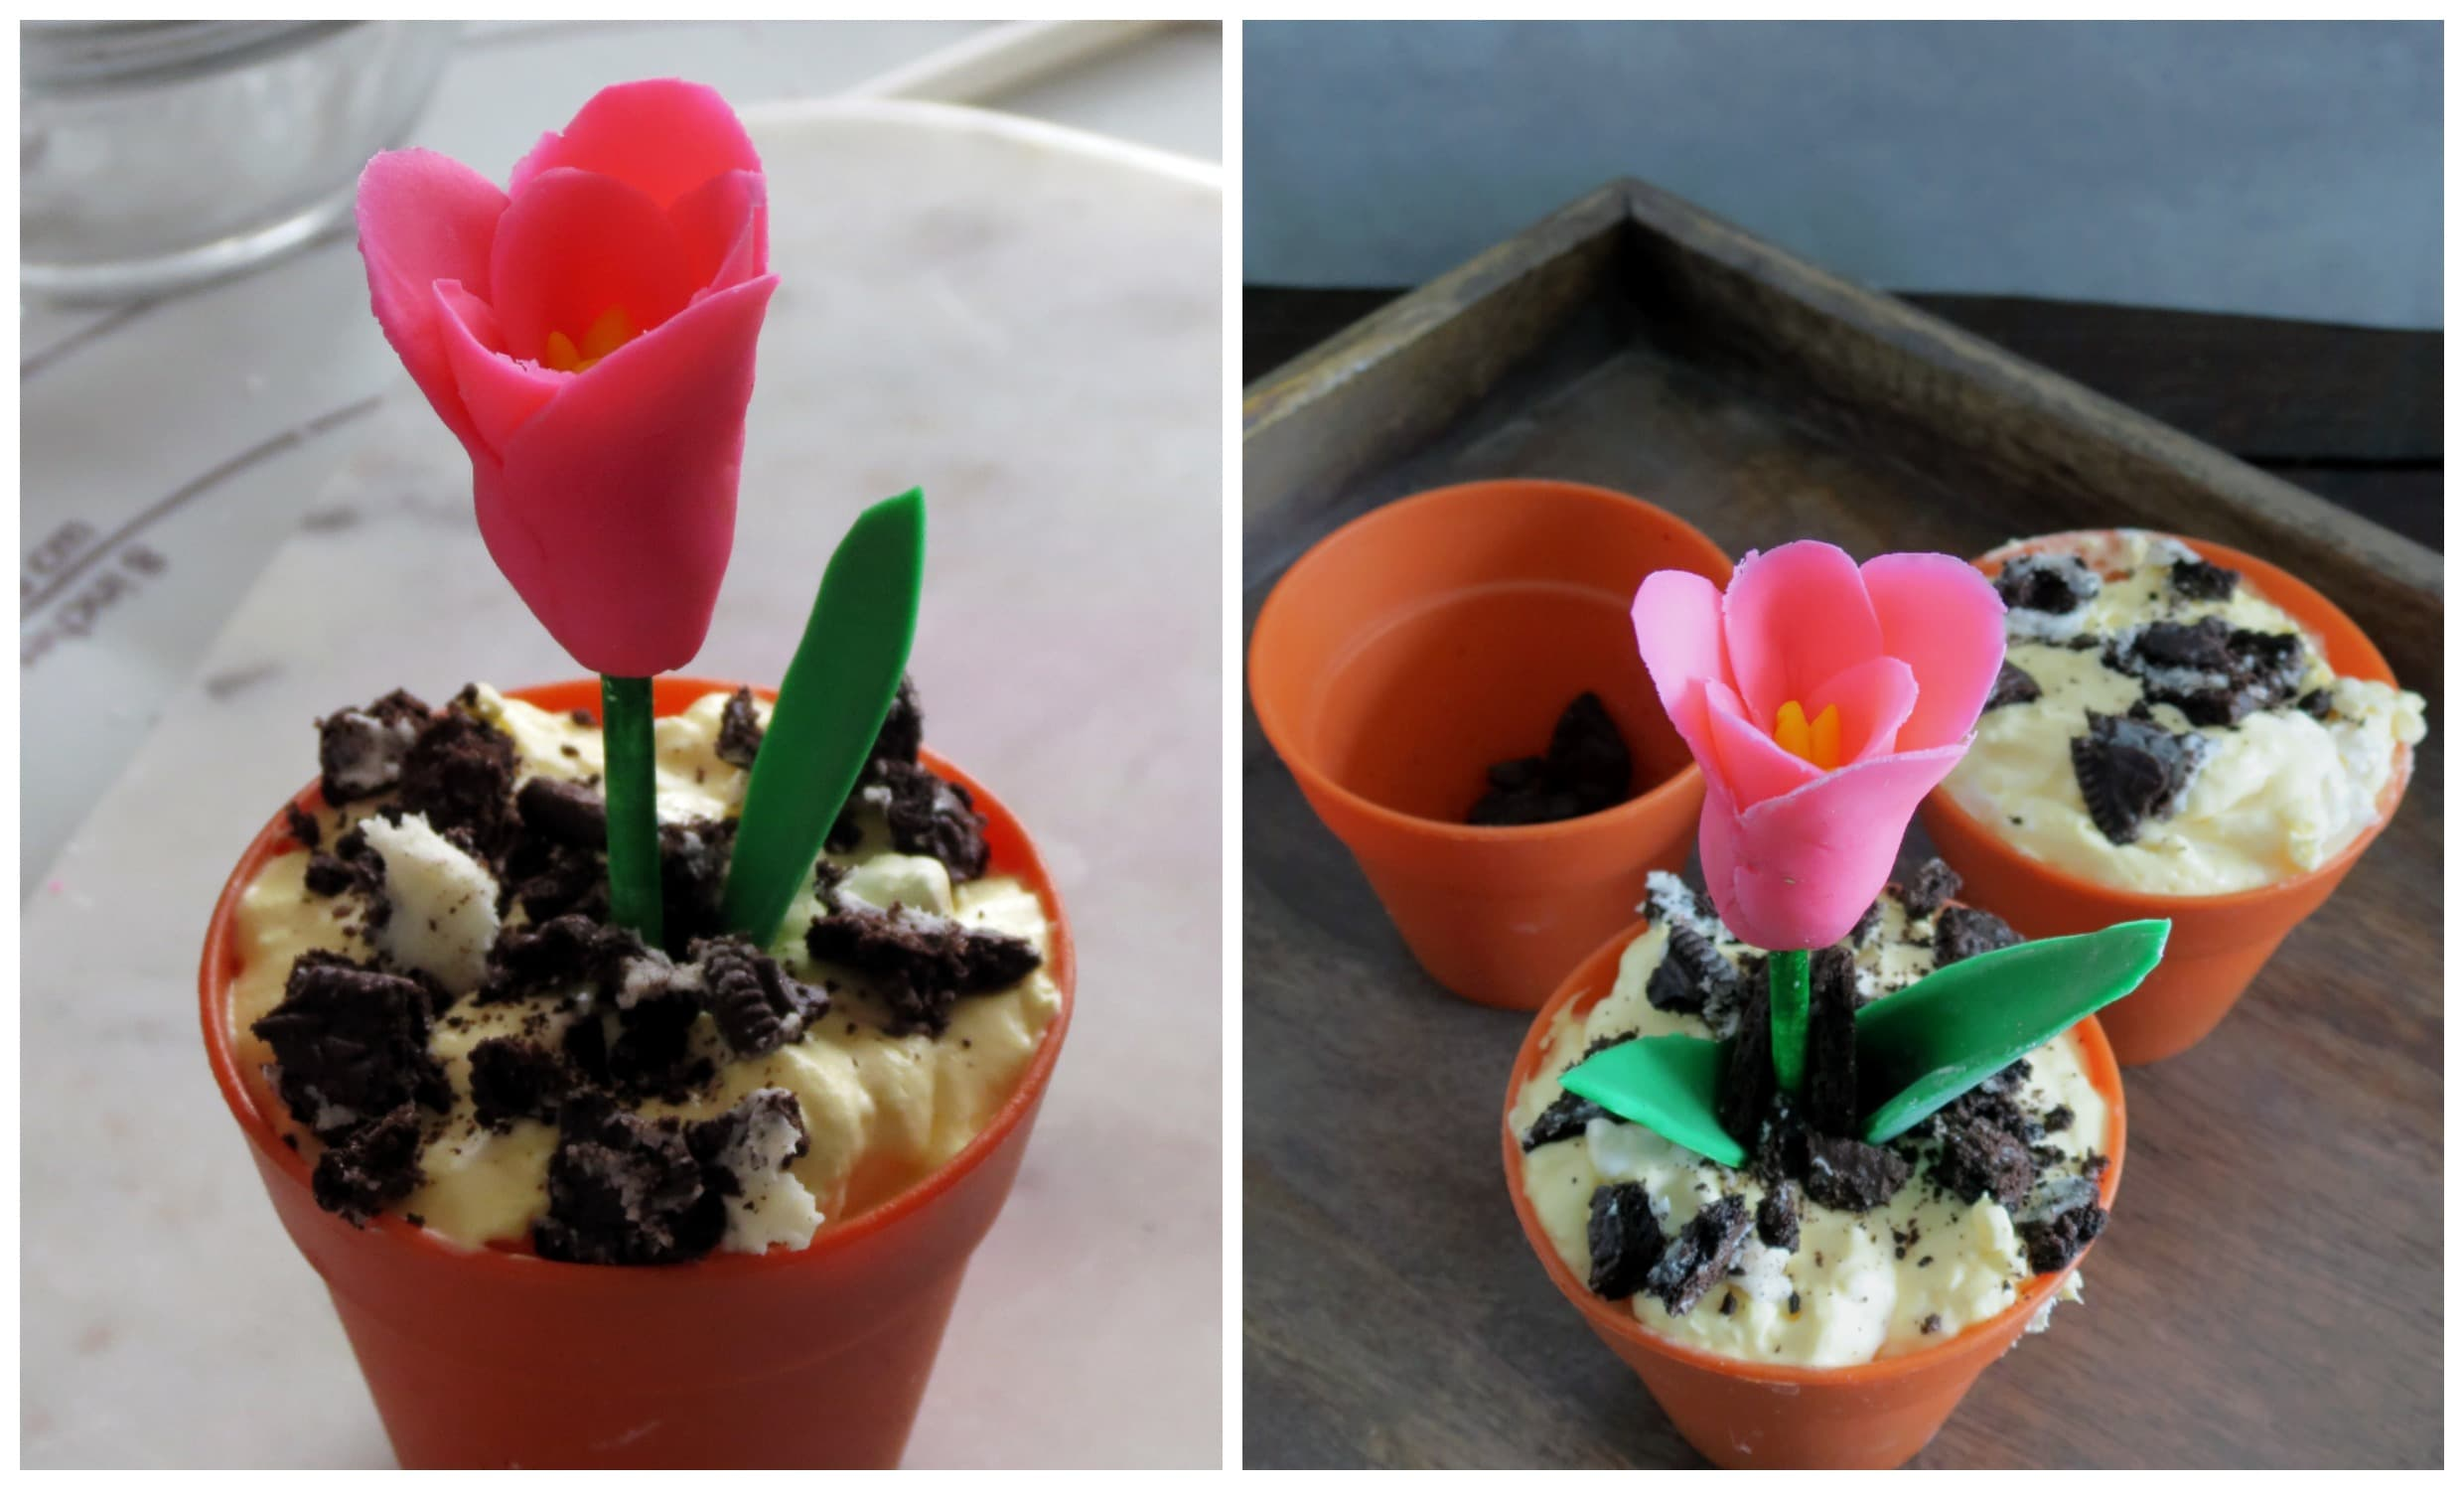 Edible Flowers in Dirt Pudding